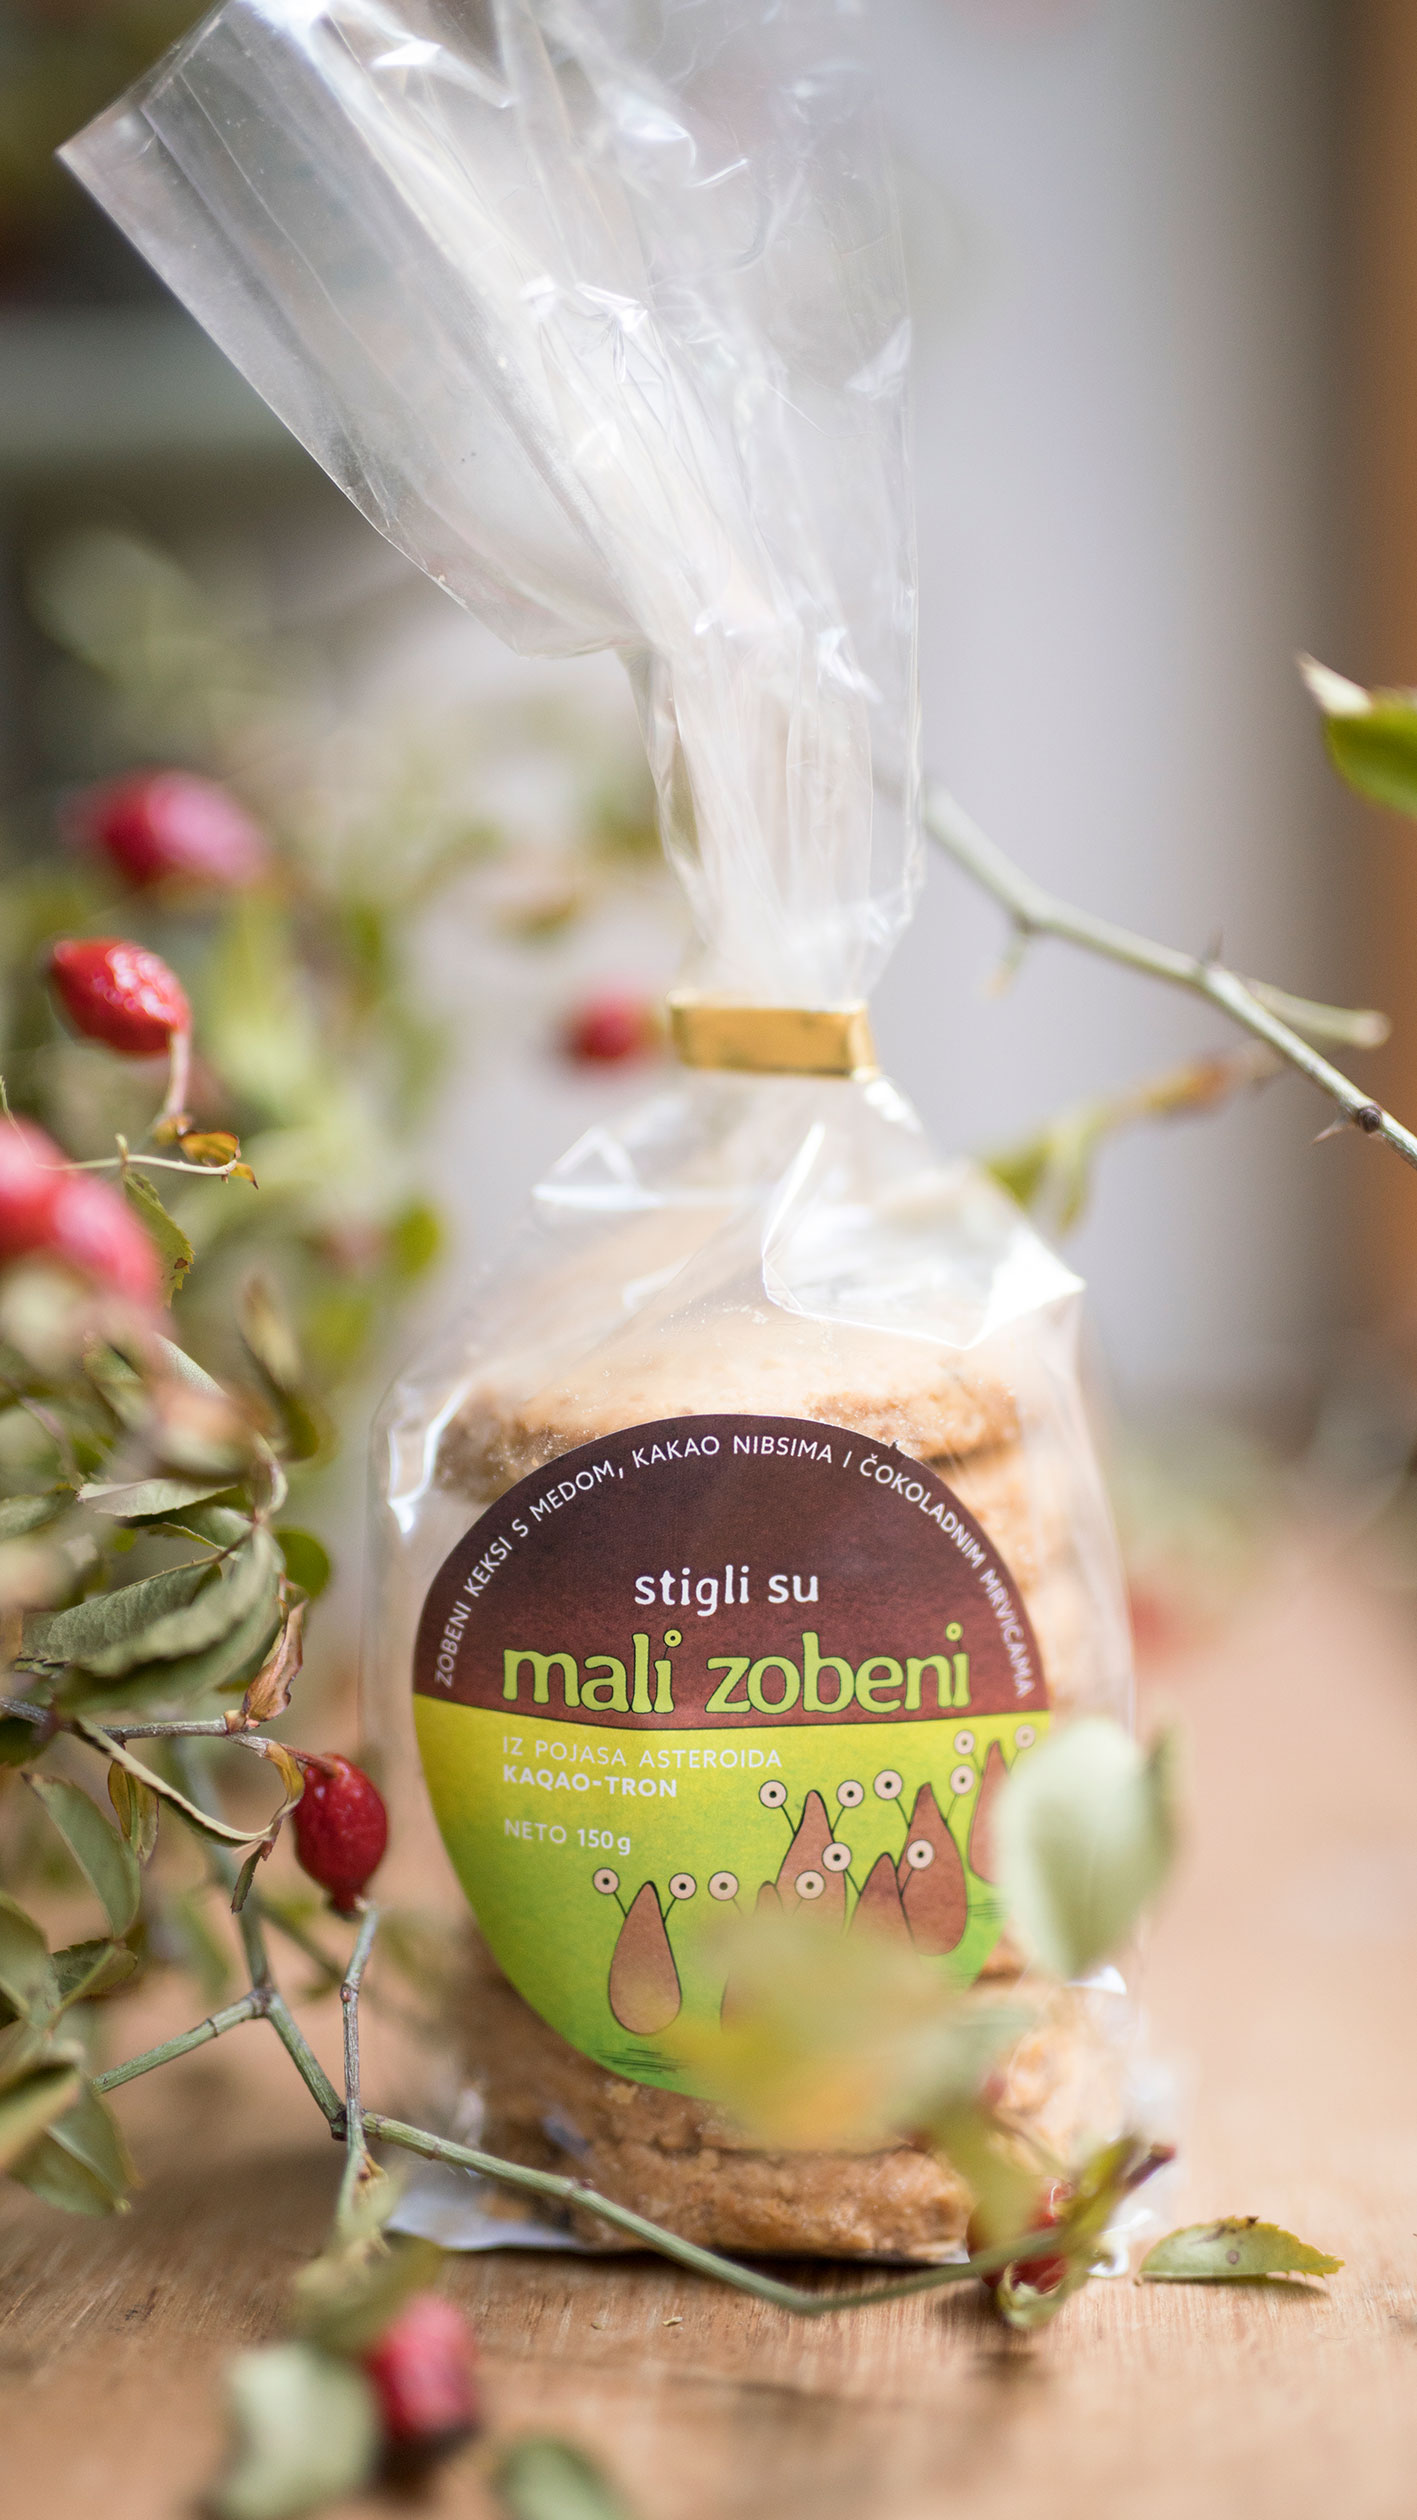 masavukmanovic.com - mali zobeni packaging 05